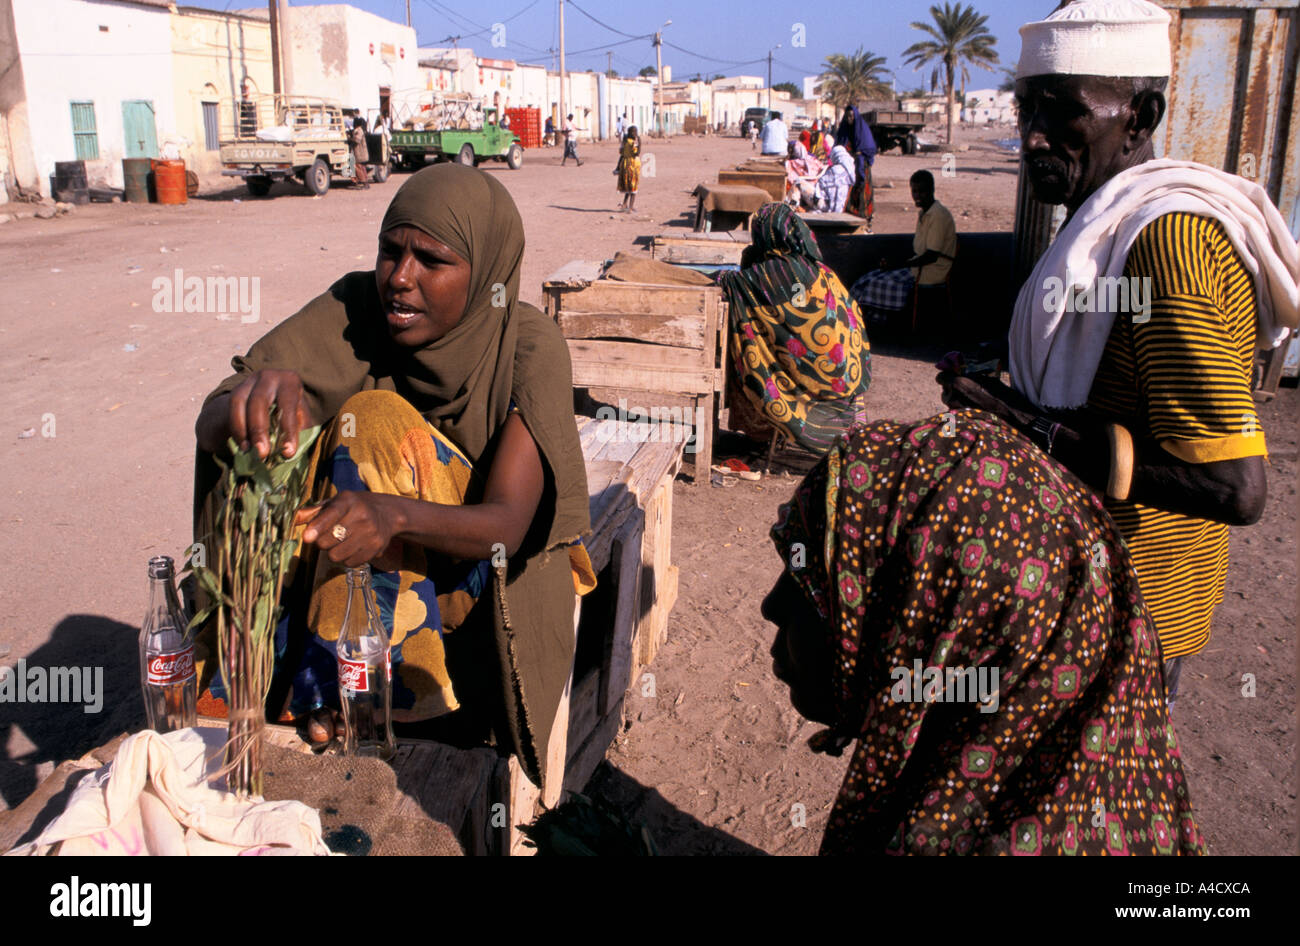 Women selling khat at the market in Tadjoura,   Republic of Djibouti - Stock Image